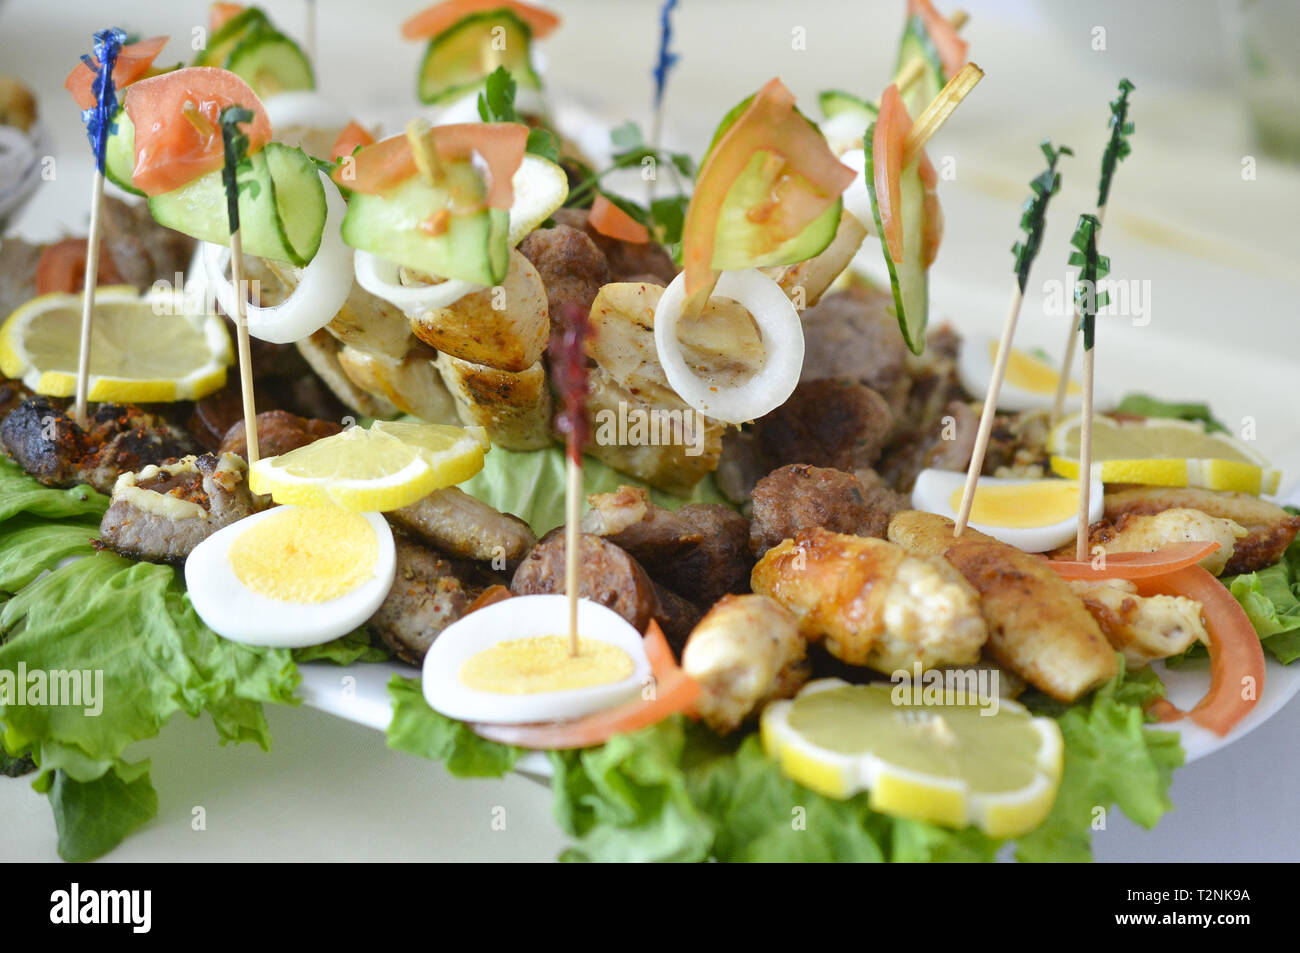 wll decorated party catering food,image - Stock Image